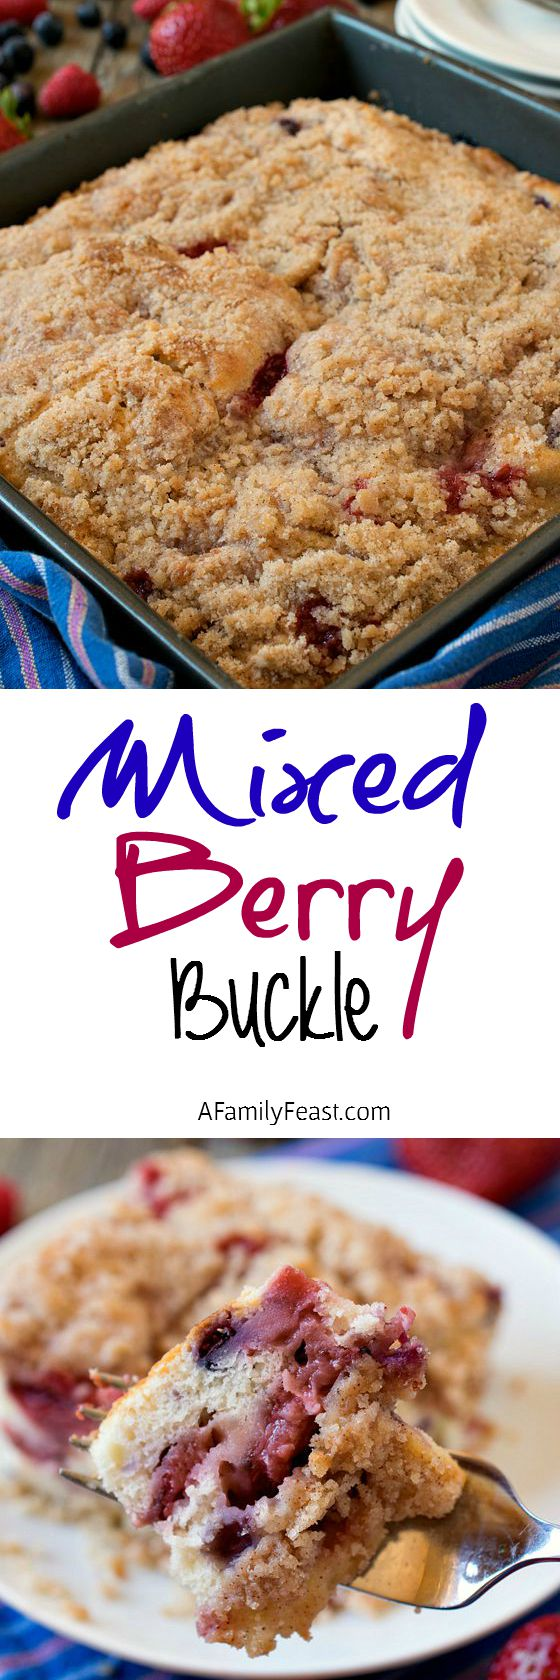 Mixed Berry Buckle - A delicious breakfast pastry or dessert made with a mix of fresh or frozen berries. A taste of summer any time of the year!